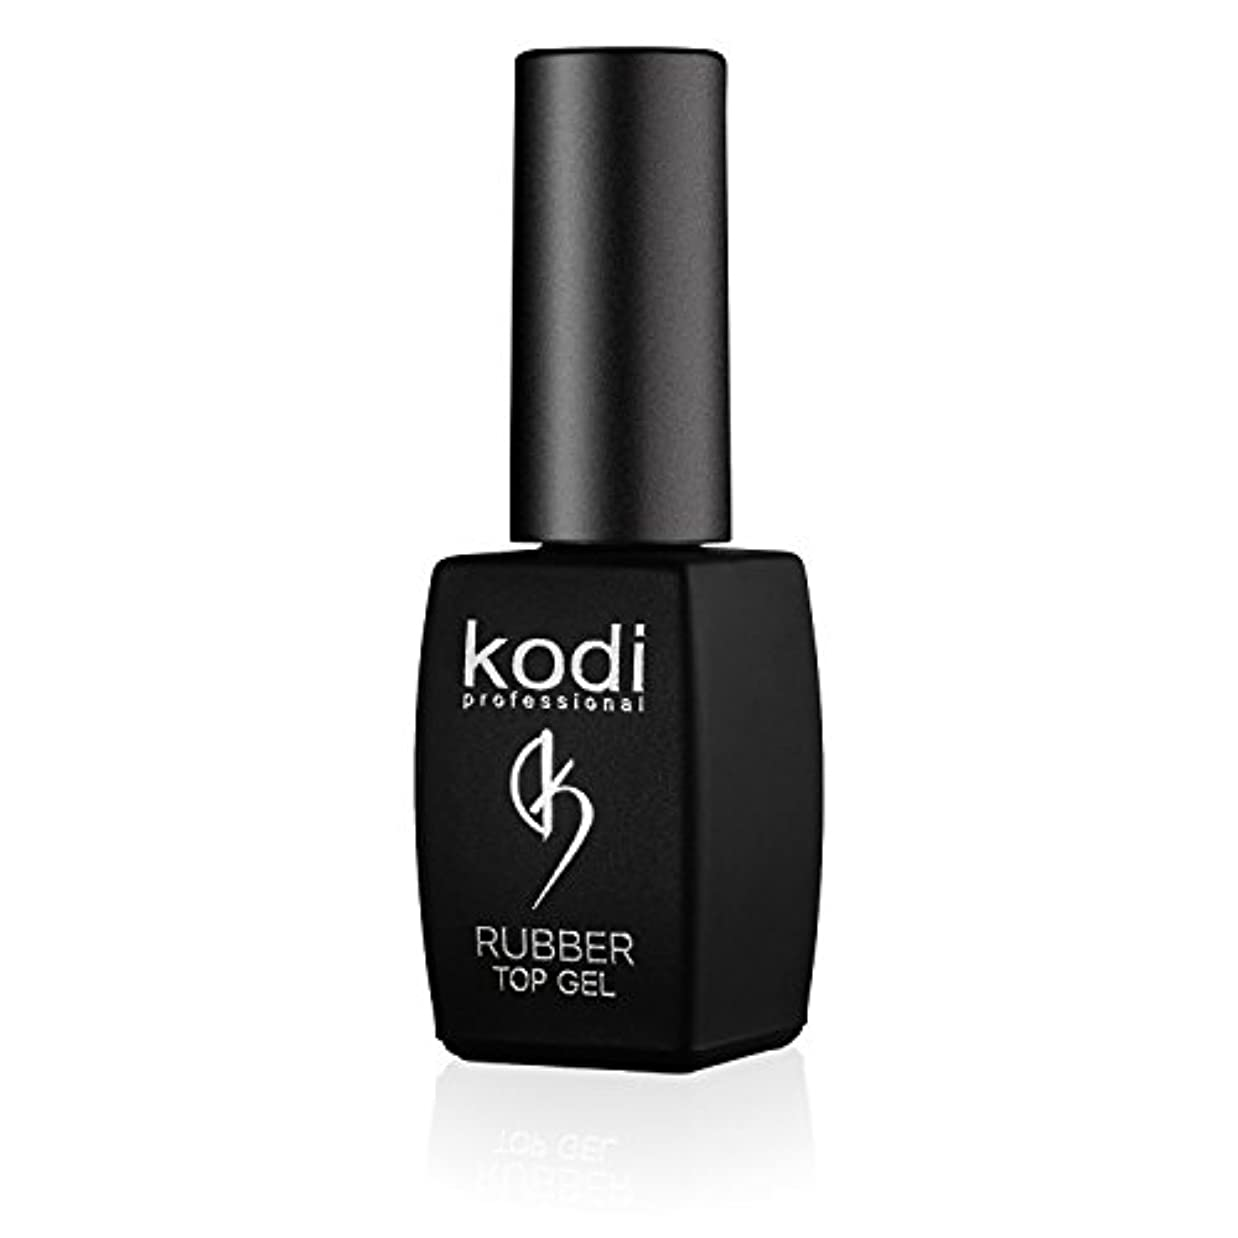 天使ドラマハーフProfessional Rubber Top Gel By Kodi | 8ml 0.27 oz | Soak Off, Polish Fingernails Coat Kit | For Long Lasting Nails...